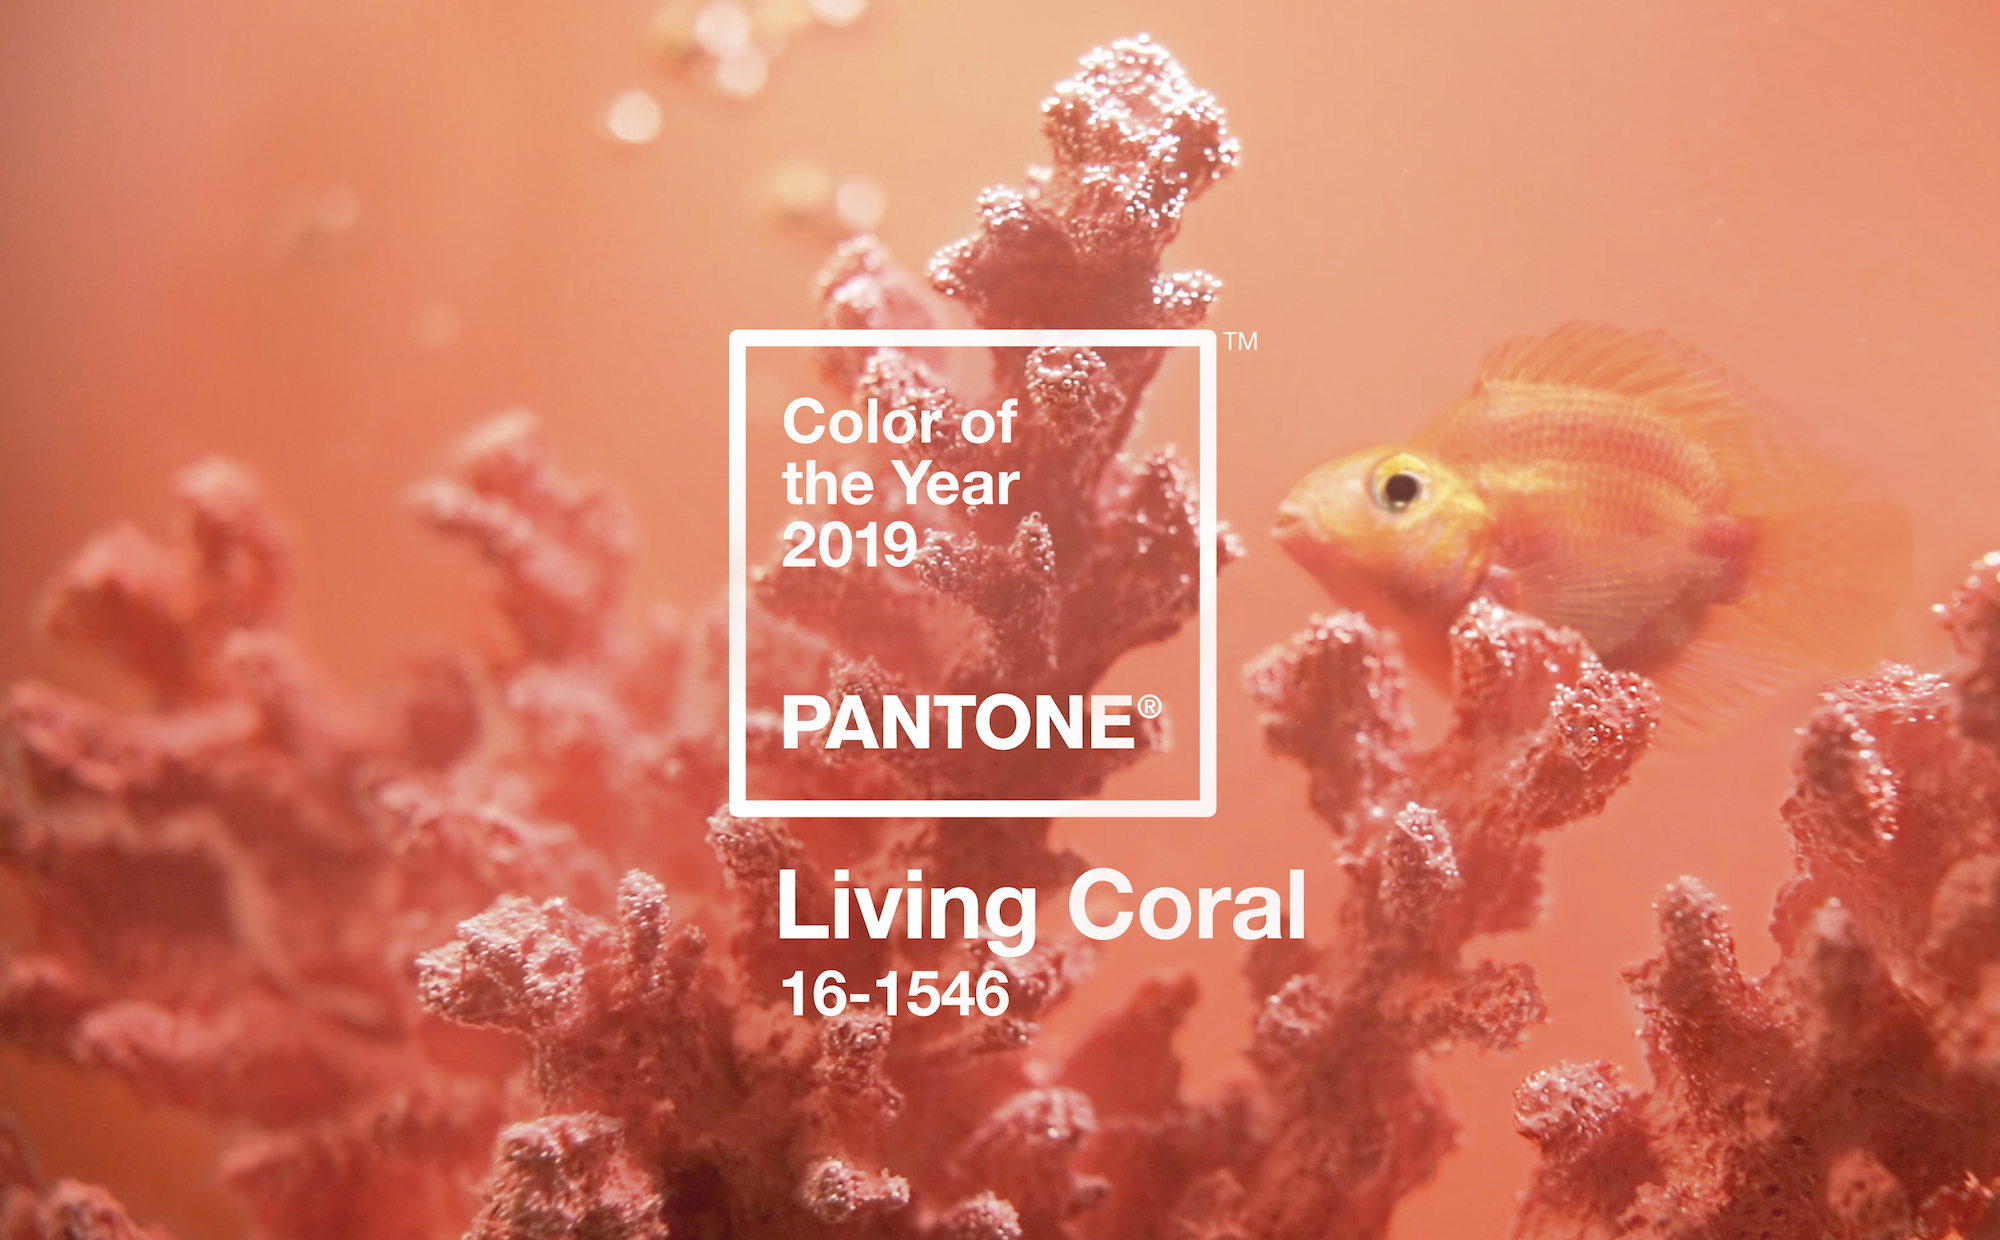 Image of goldfish and coral featuring the Pantone Colour of the Year Living Coral